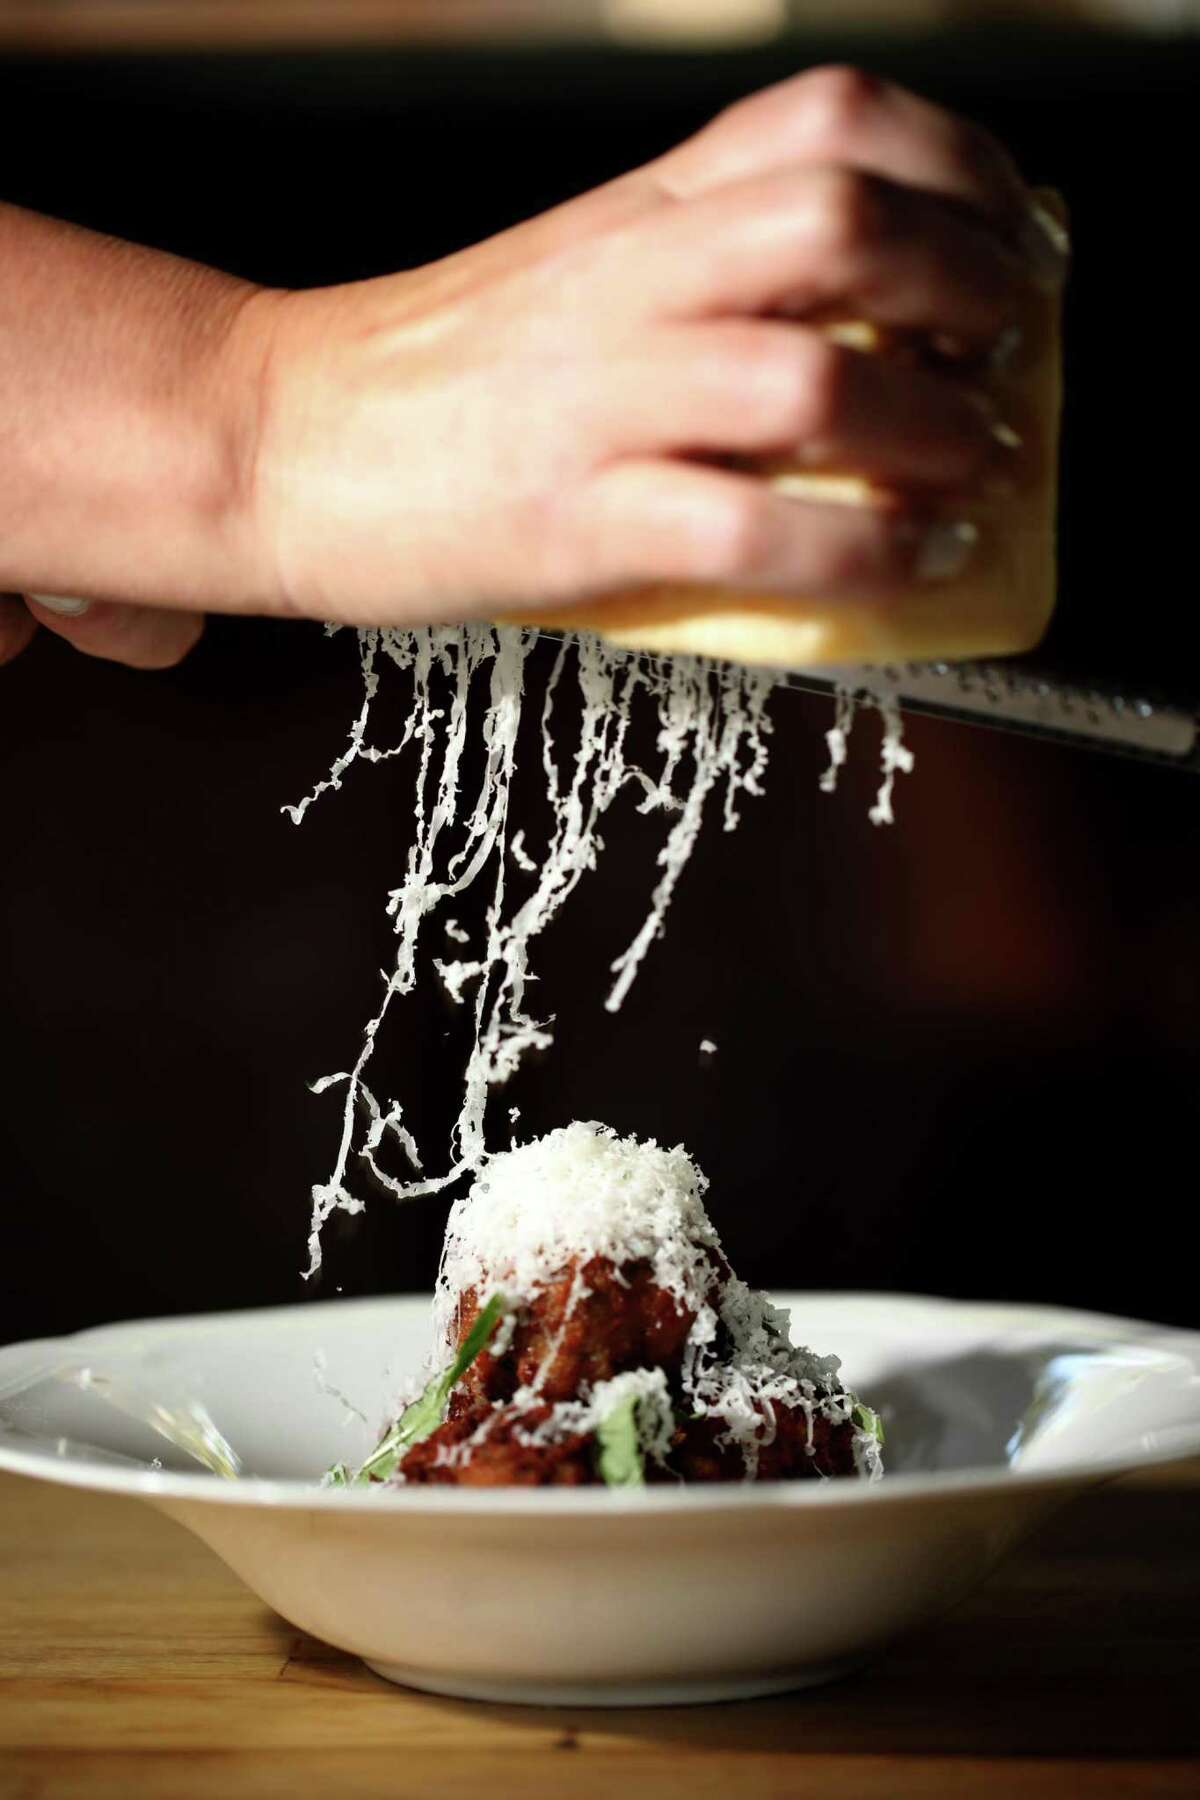 Chef Priscilla Przygocki grates cheese atop of the pan-fried beef and pork meatballs.